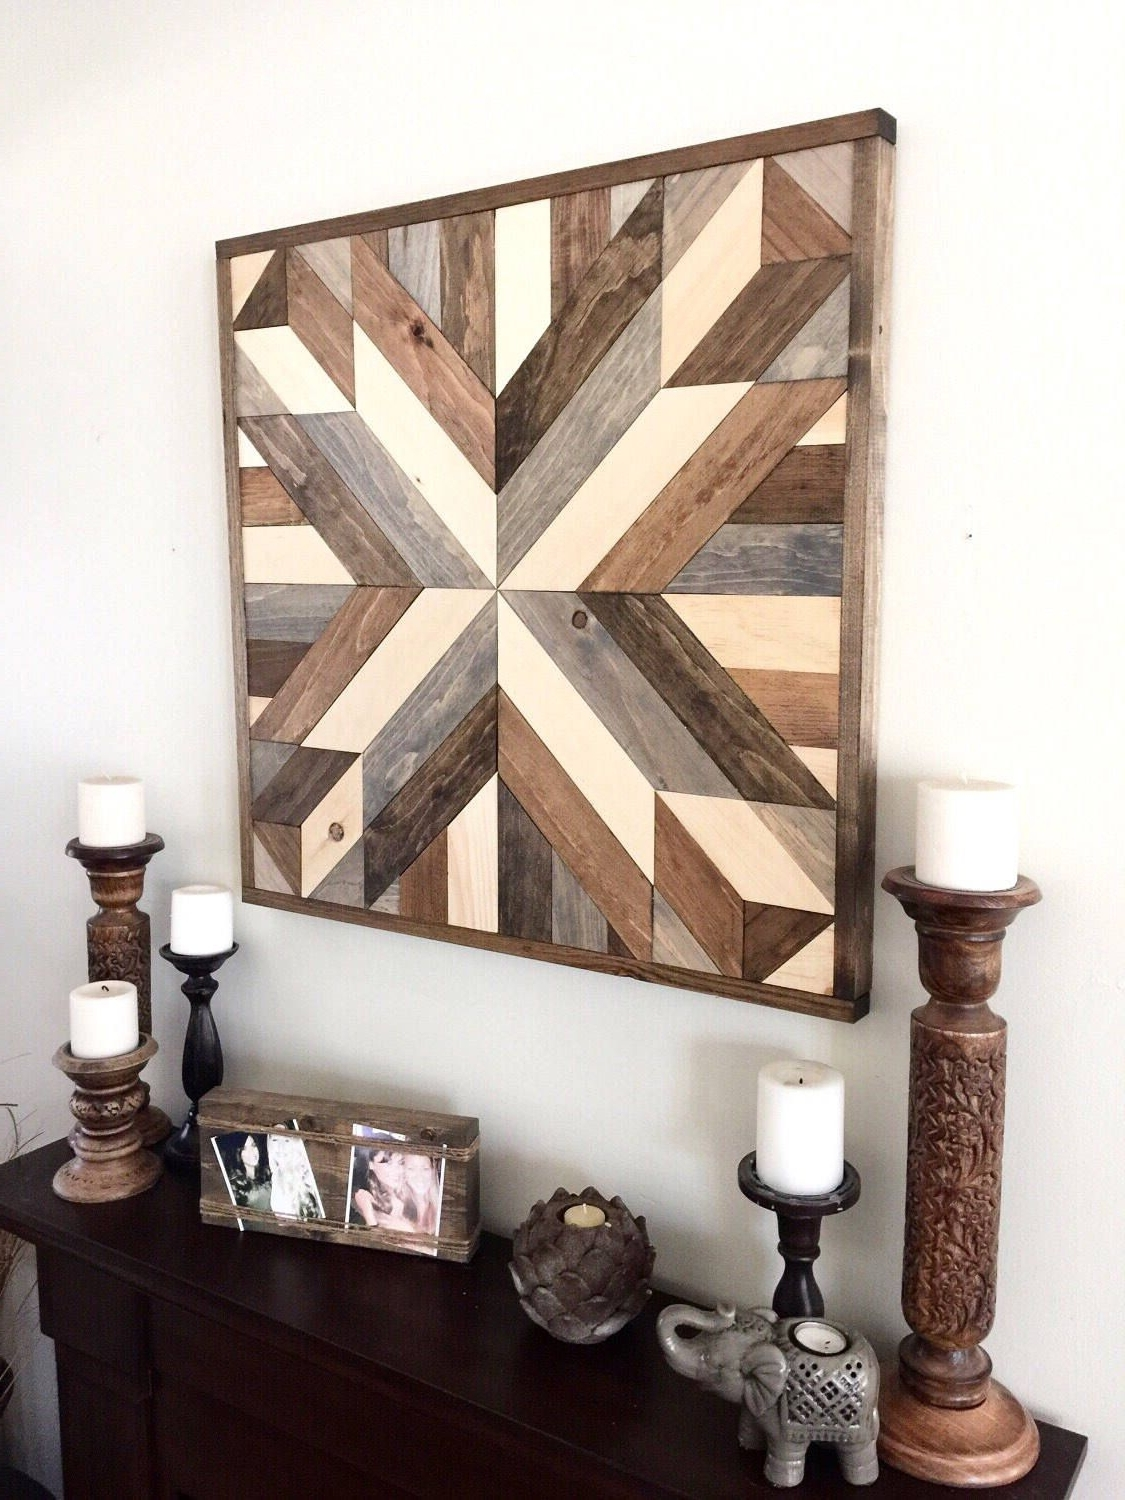 Famous Reclaimed Wood Wall Art Inside Reclaimed Wood Wall Art, Wood Art, Rustic Wall Decor, Farmhouse (View 3 of 15)